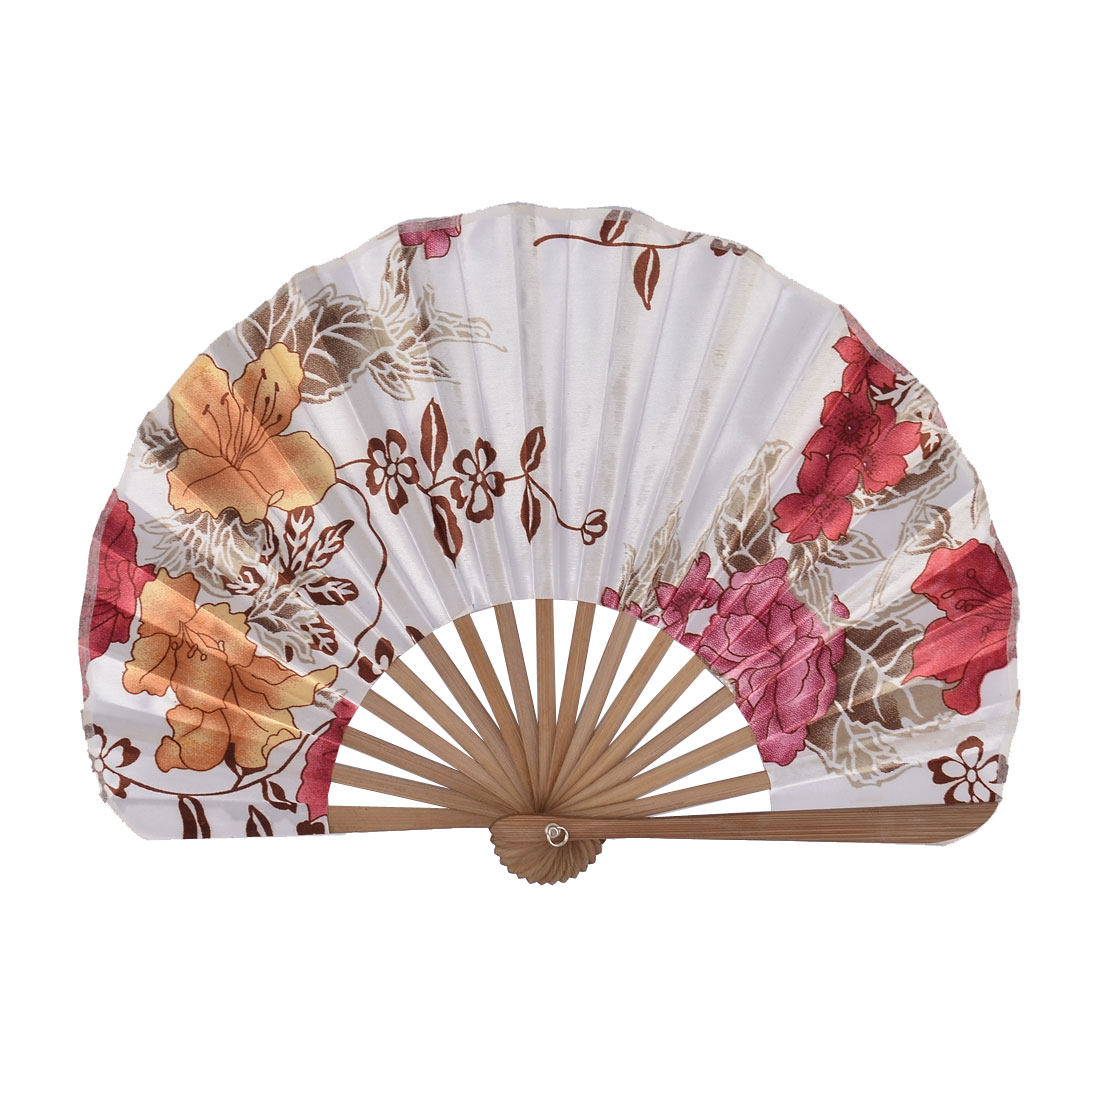 Chinese Bamboo Frame Wash Painting Print Dancing Adornment Folding Handheld Fan